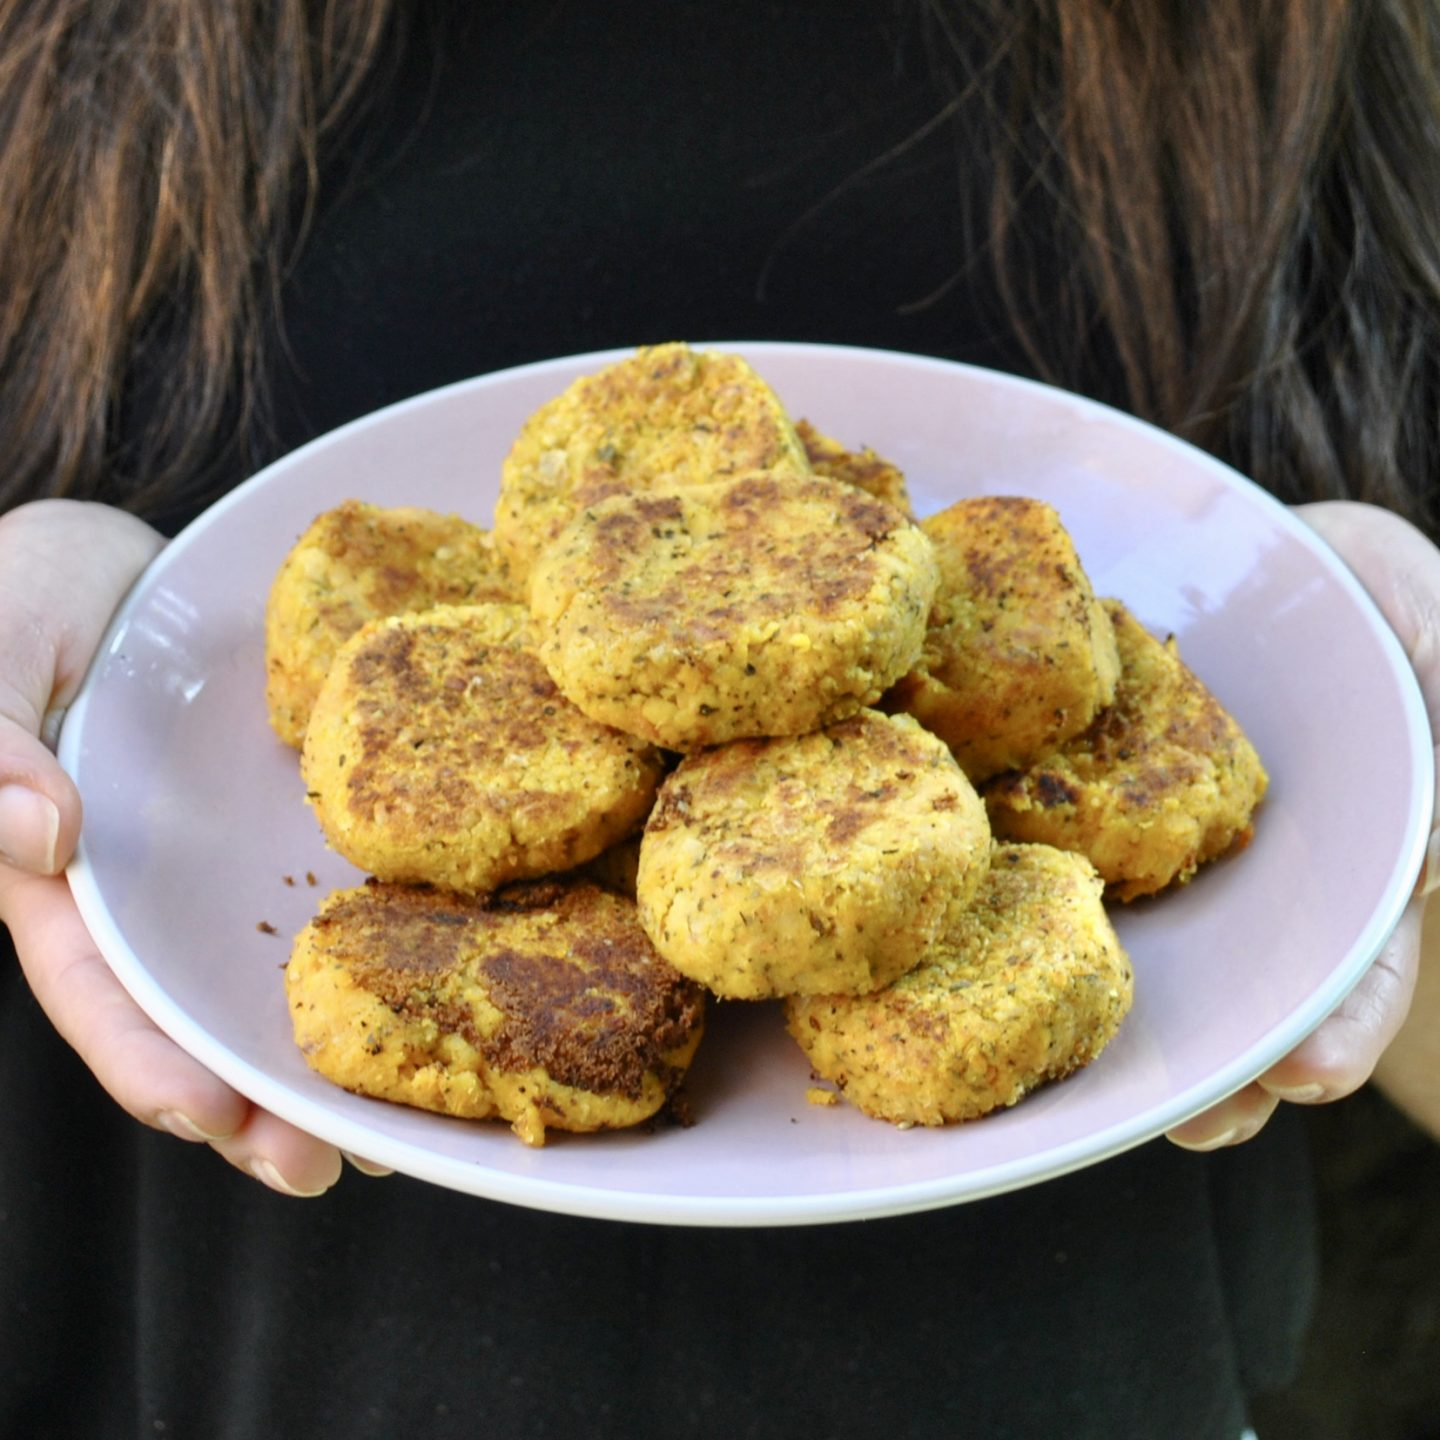 Chickpea Patties Vegan Gluten Free Eli Brecher cereal and peanut butter